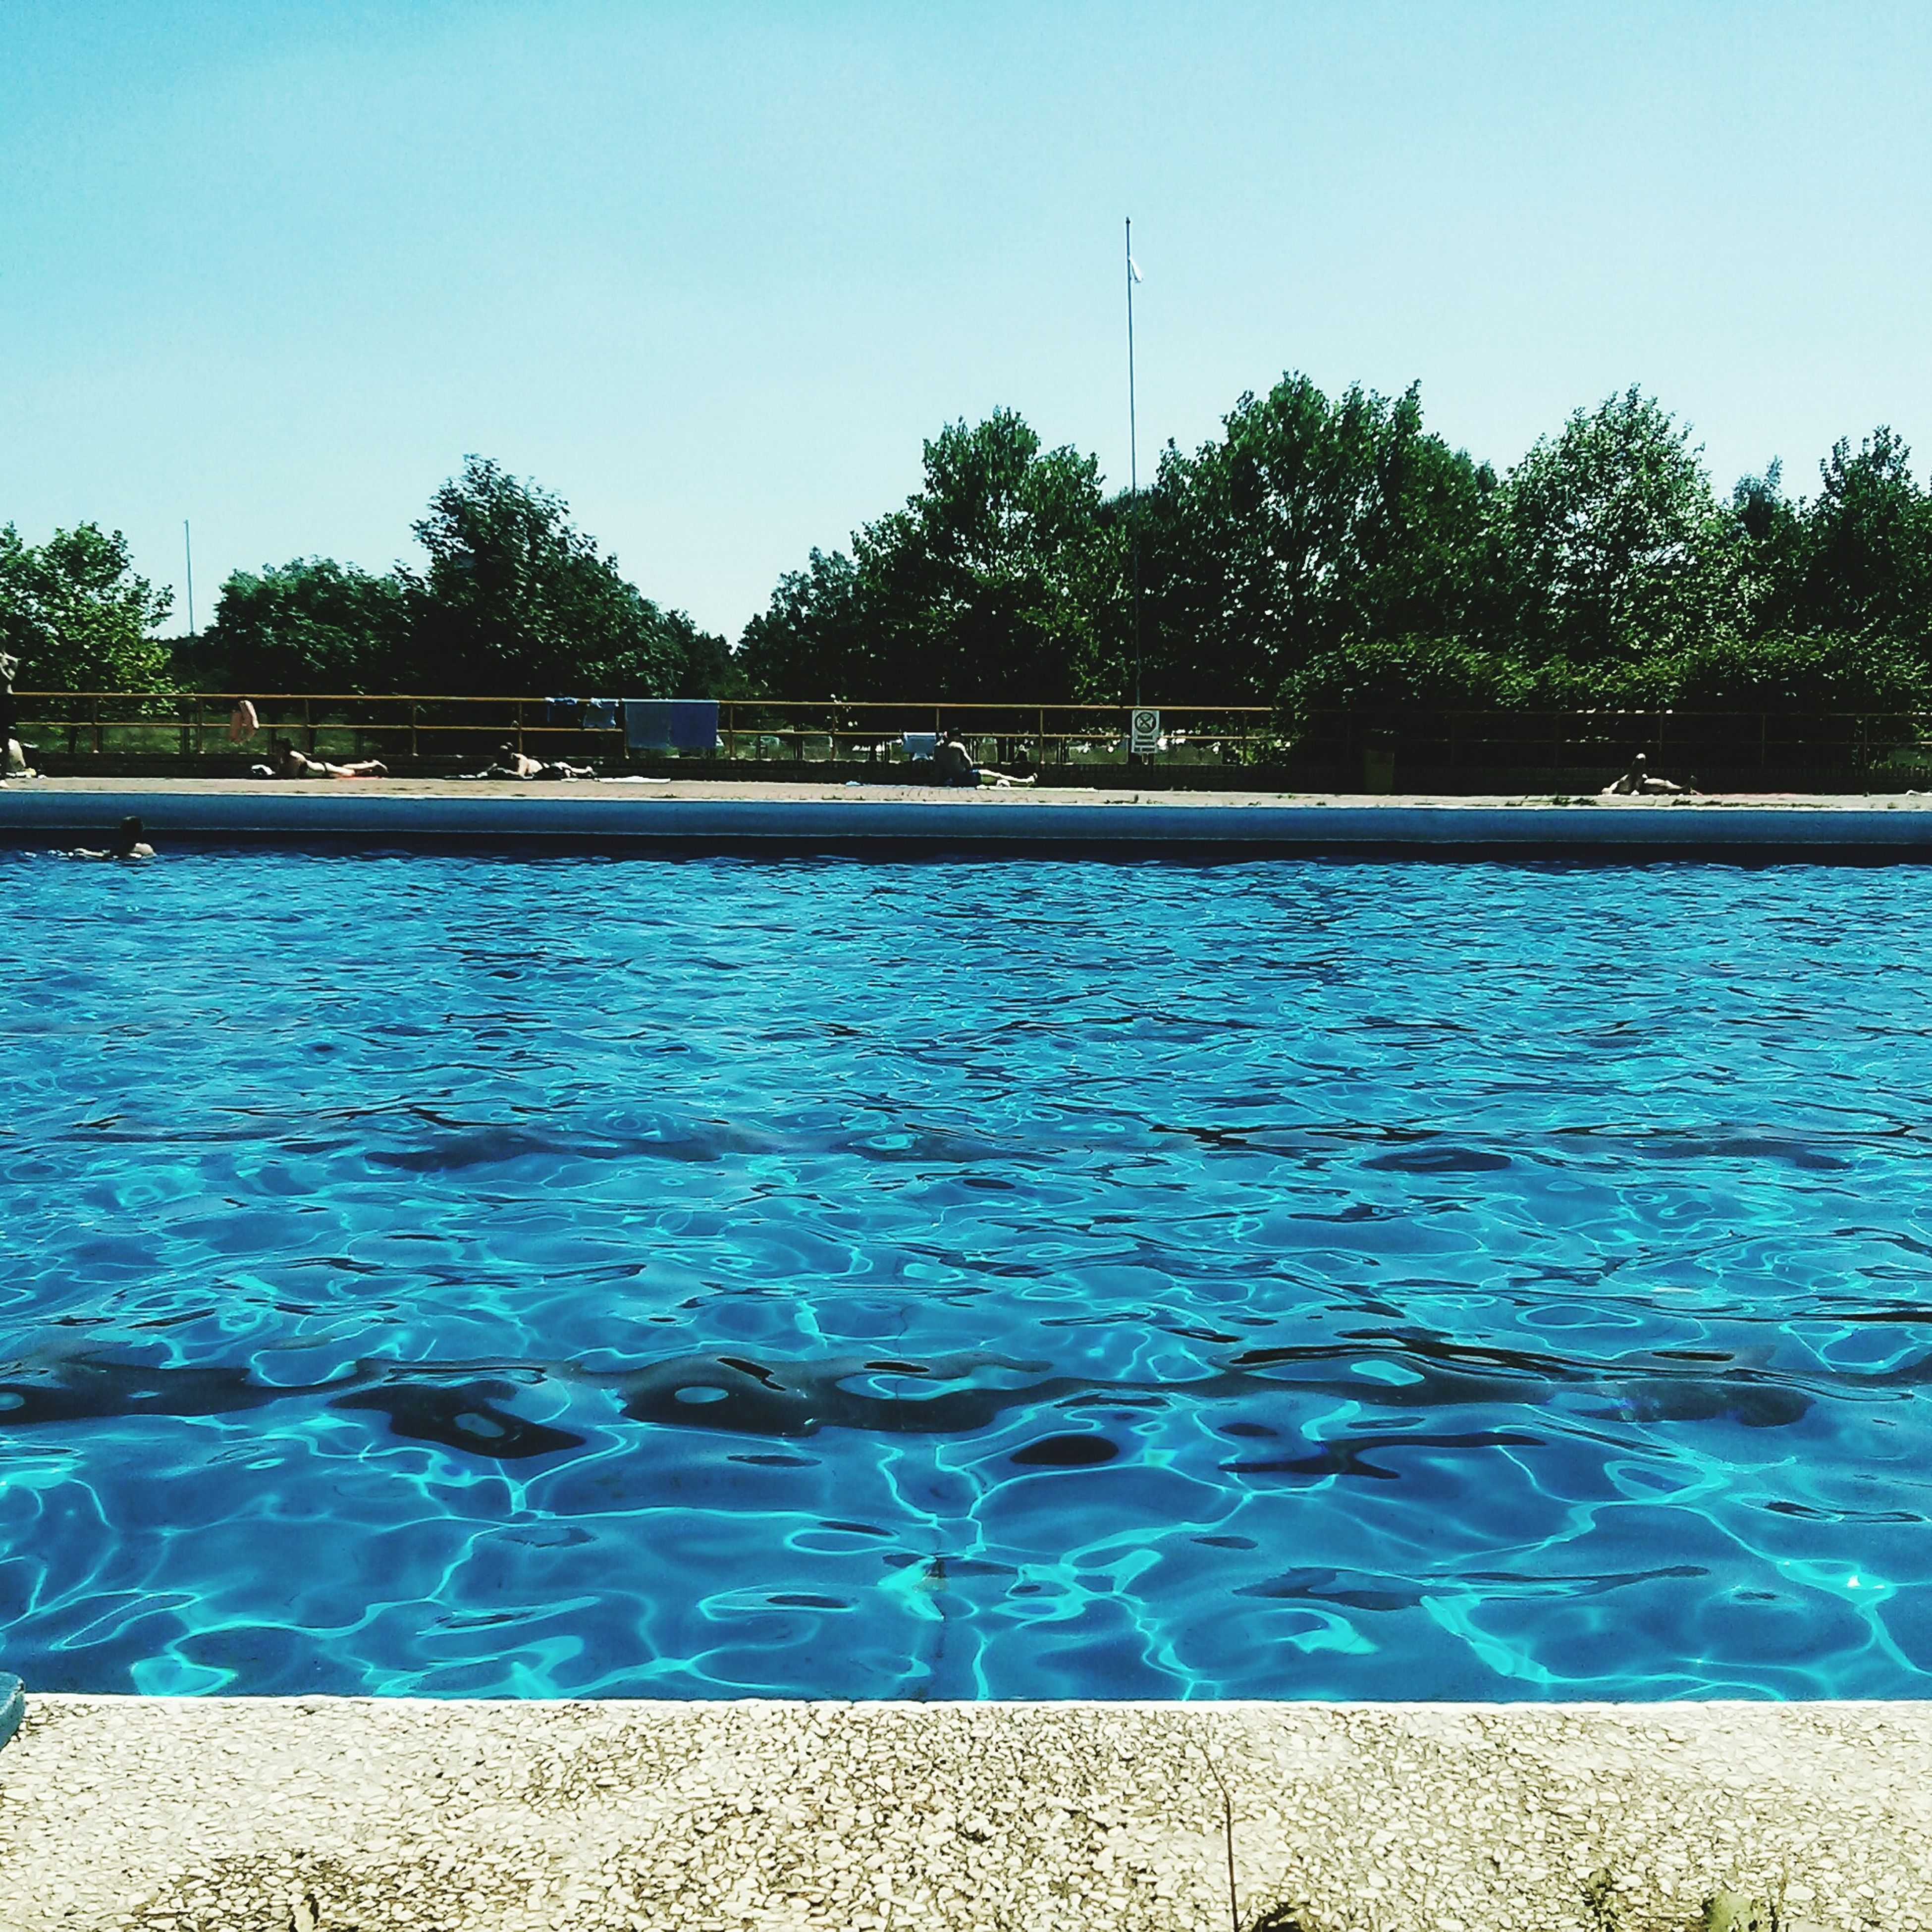 water, blue, tree, swimming pool, tranquility, tranquil scene, nature, beauty in nature, scenics, rippled, sunlight, growth, turquoise colored, day, idyllic, outdoors, sky, no people, calm, green color, sunny, green